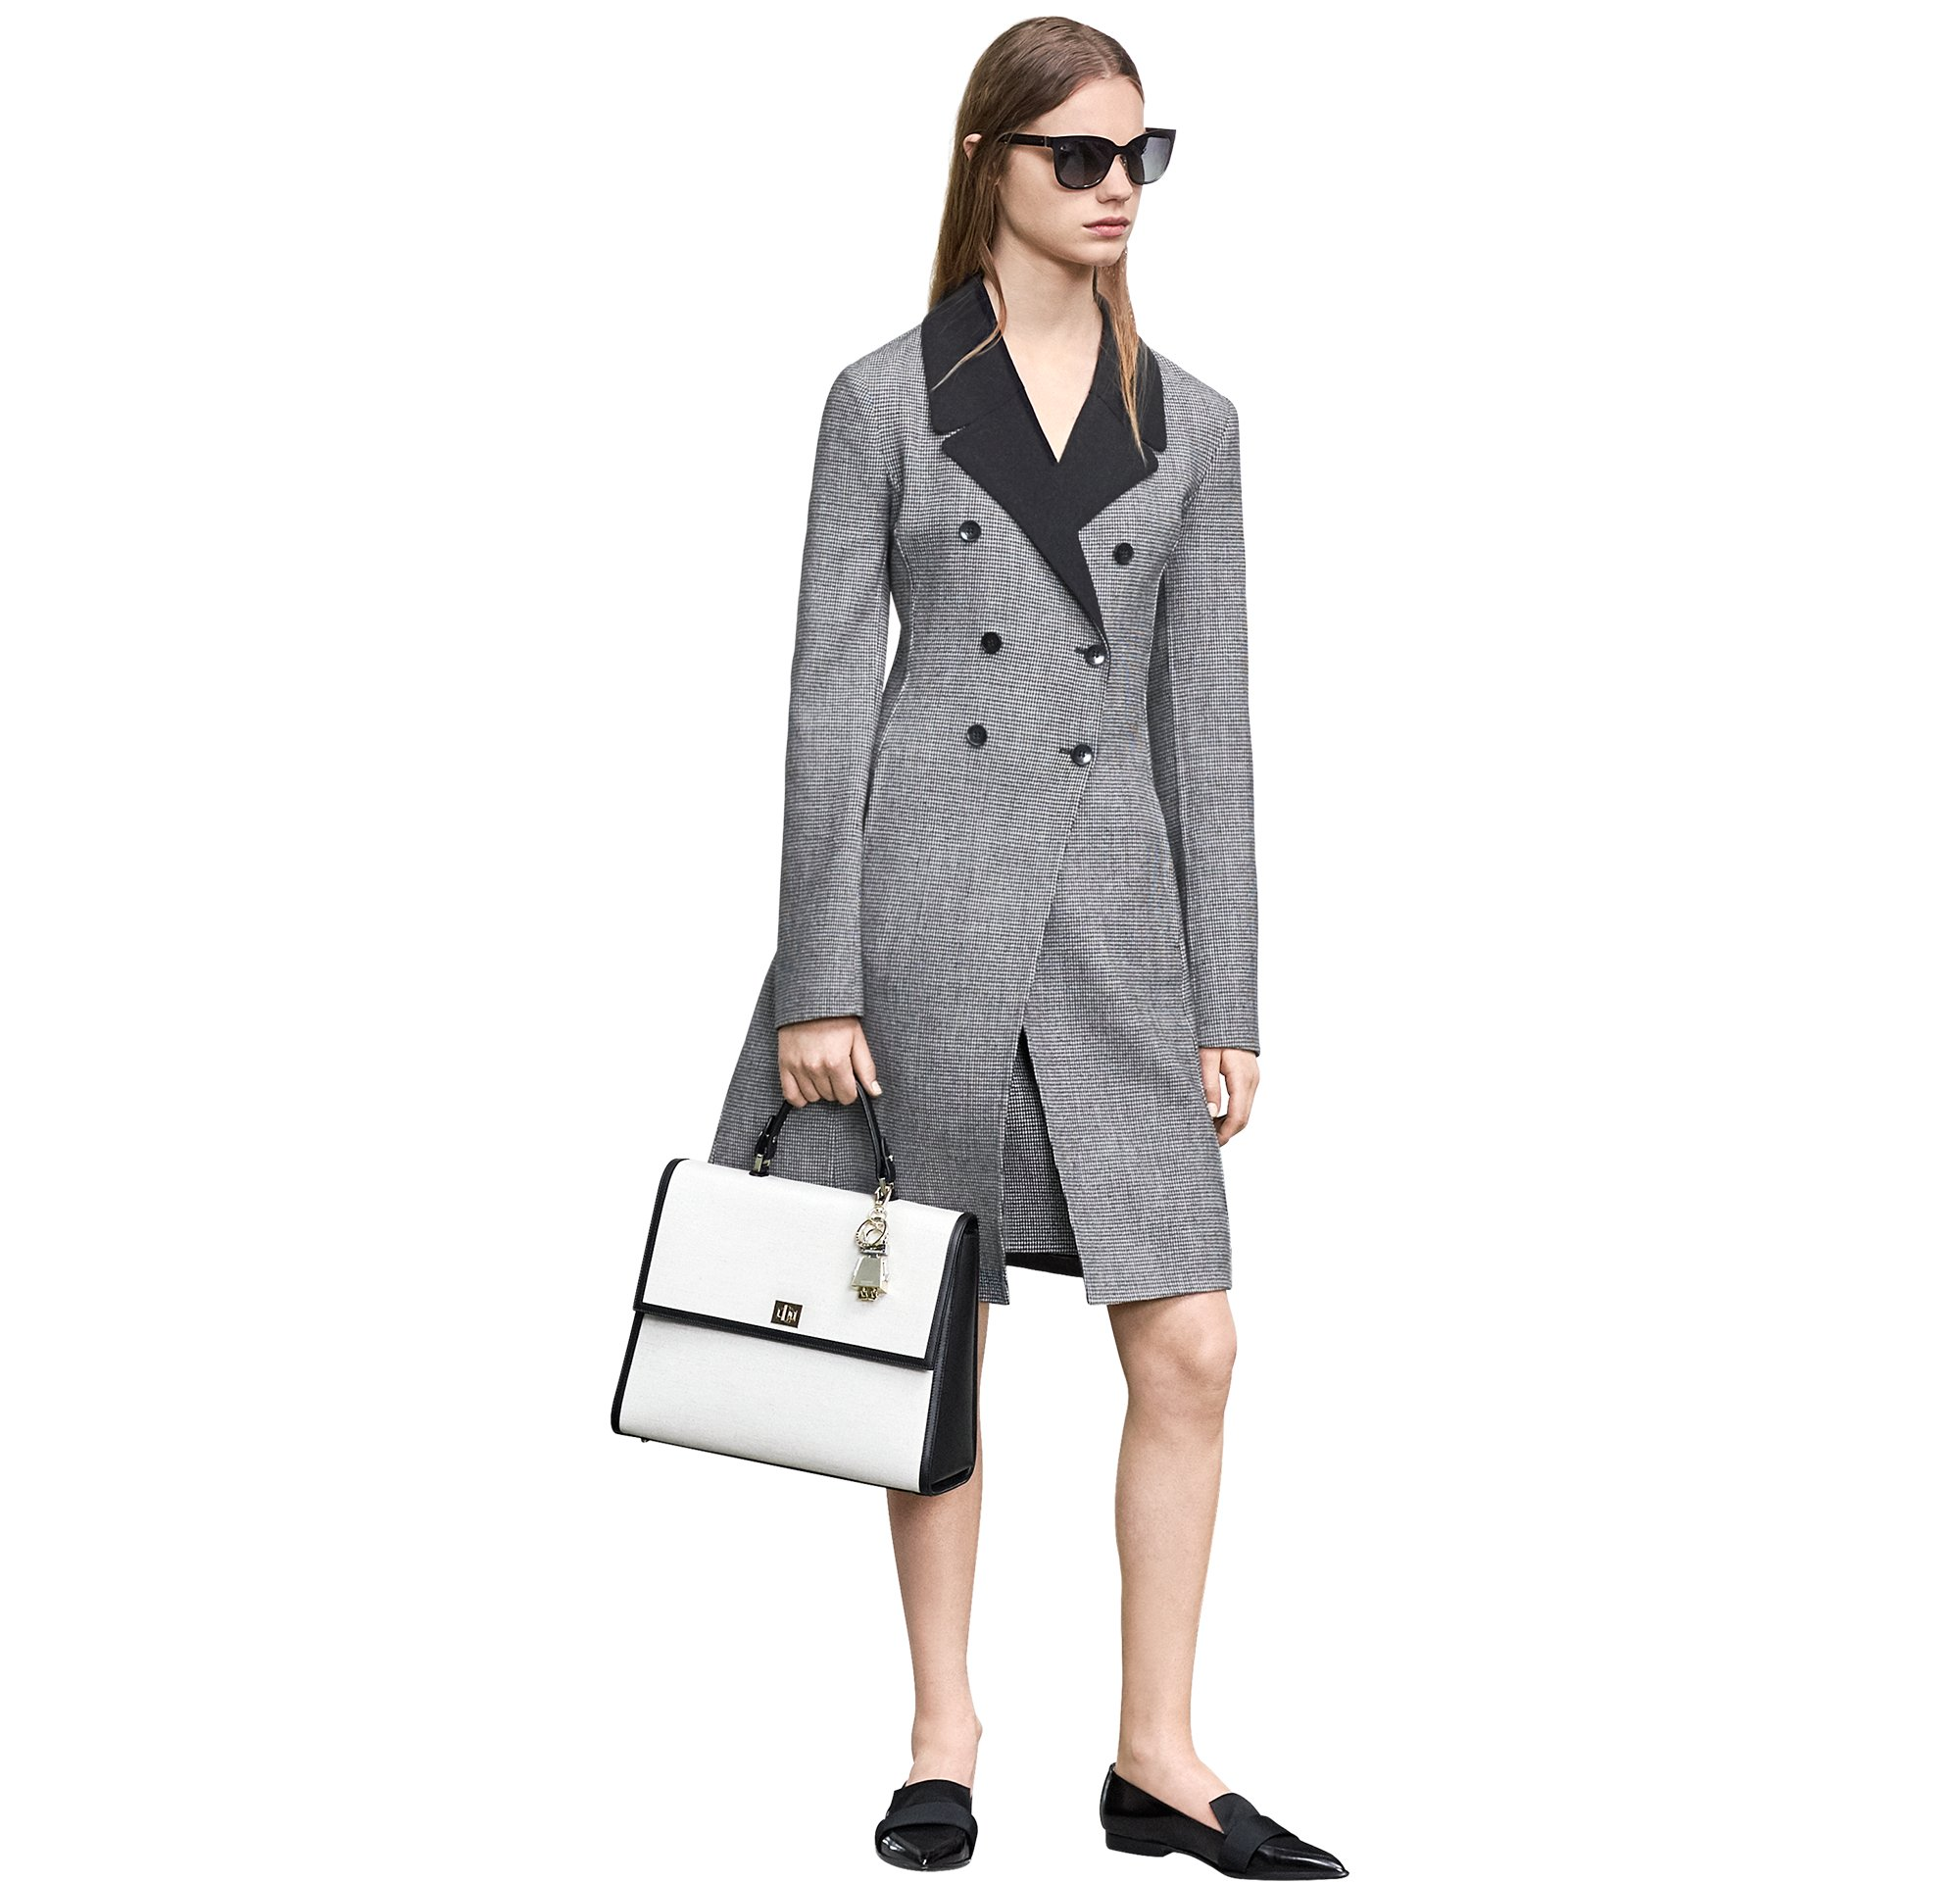 Grey coat over skirt with bag and shoes by BOSS